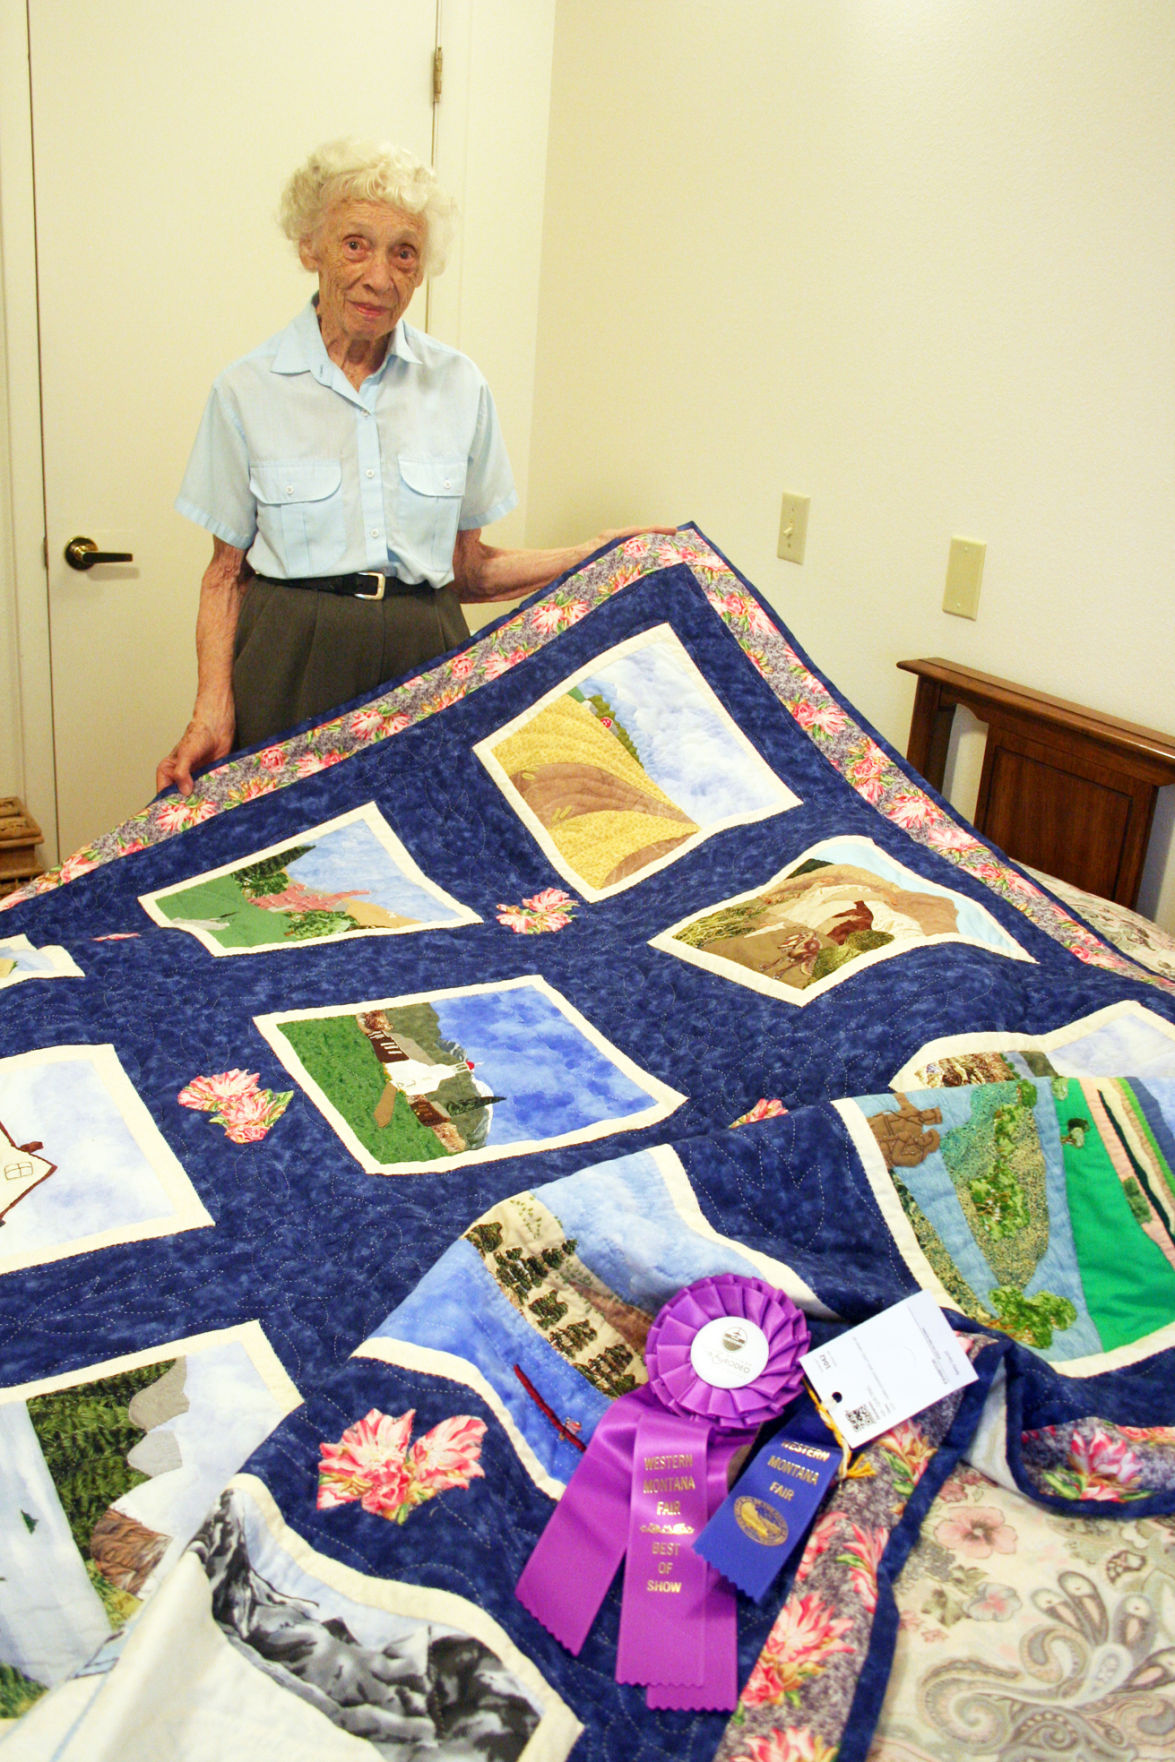 Top quilter: Hamilton resident wins best of show at Western Montana Fair